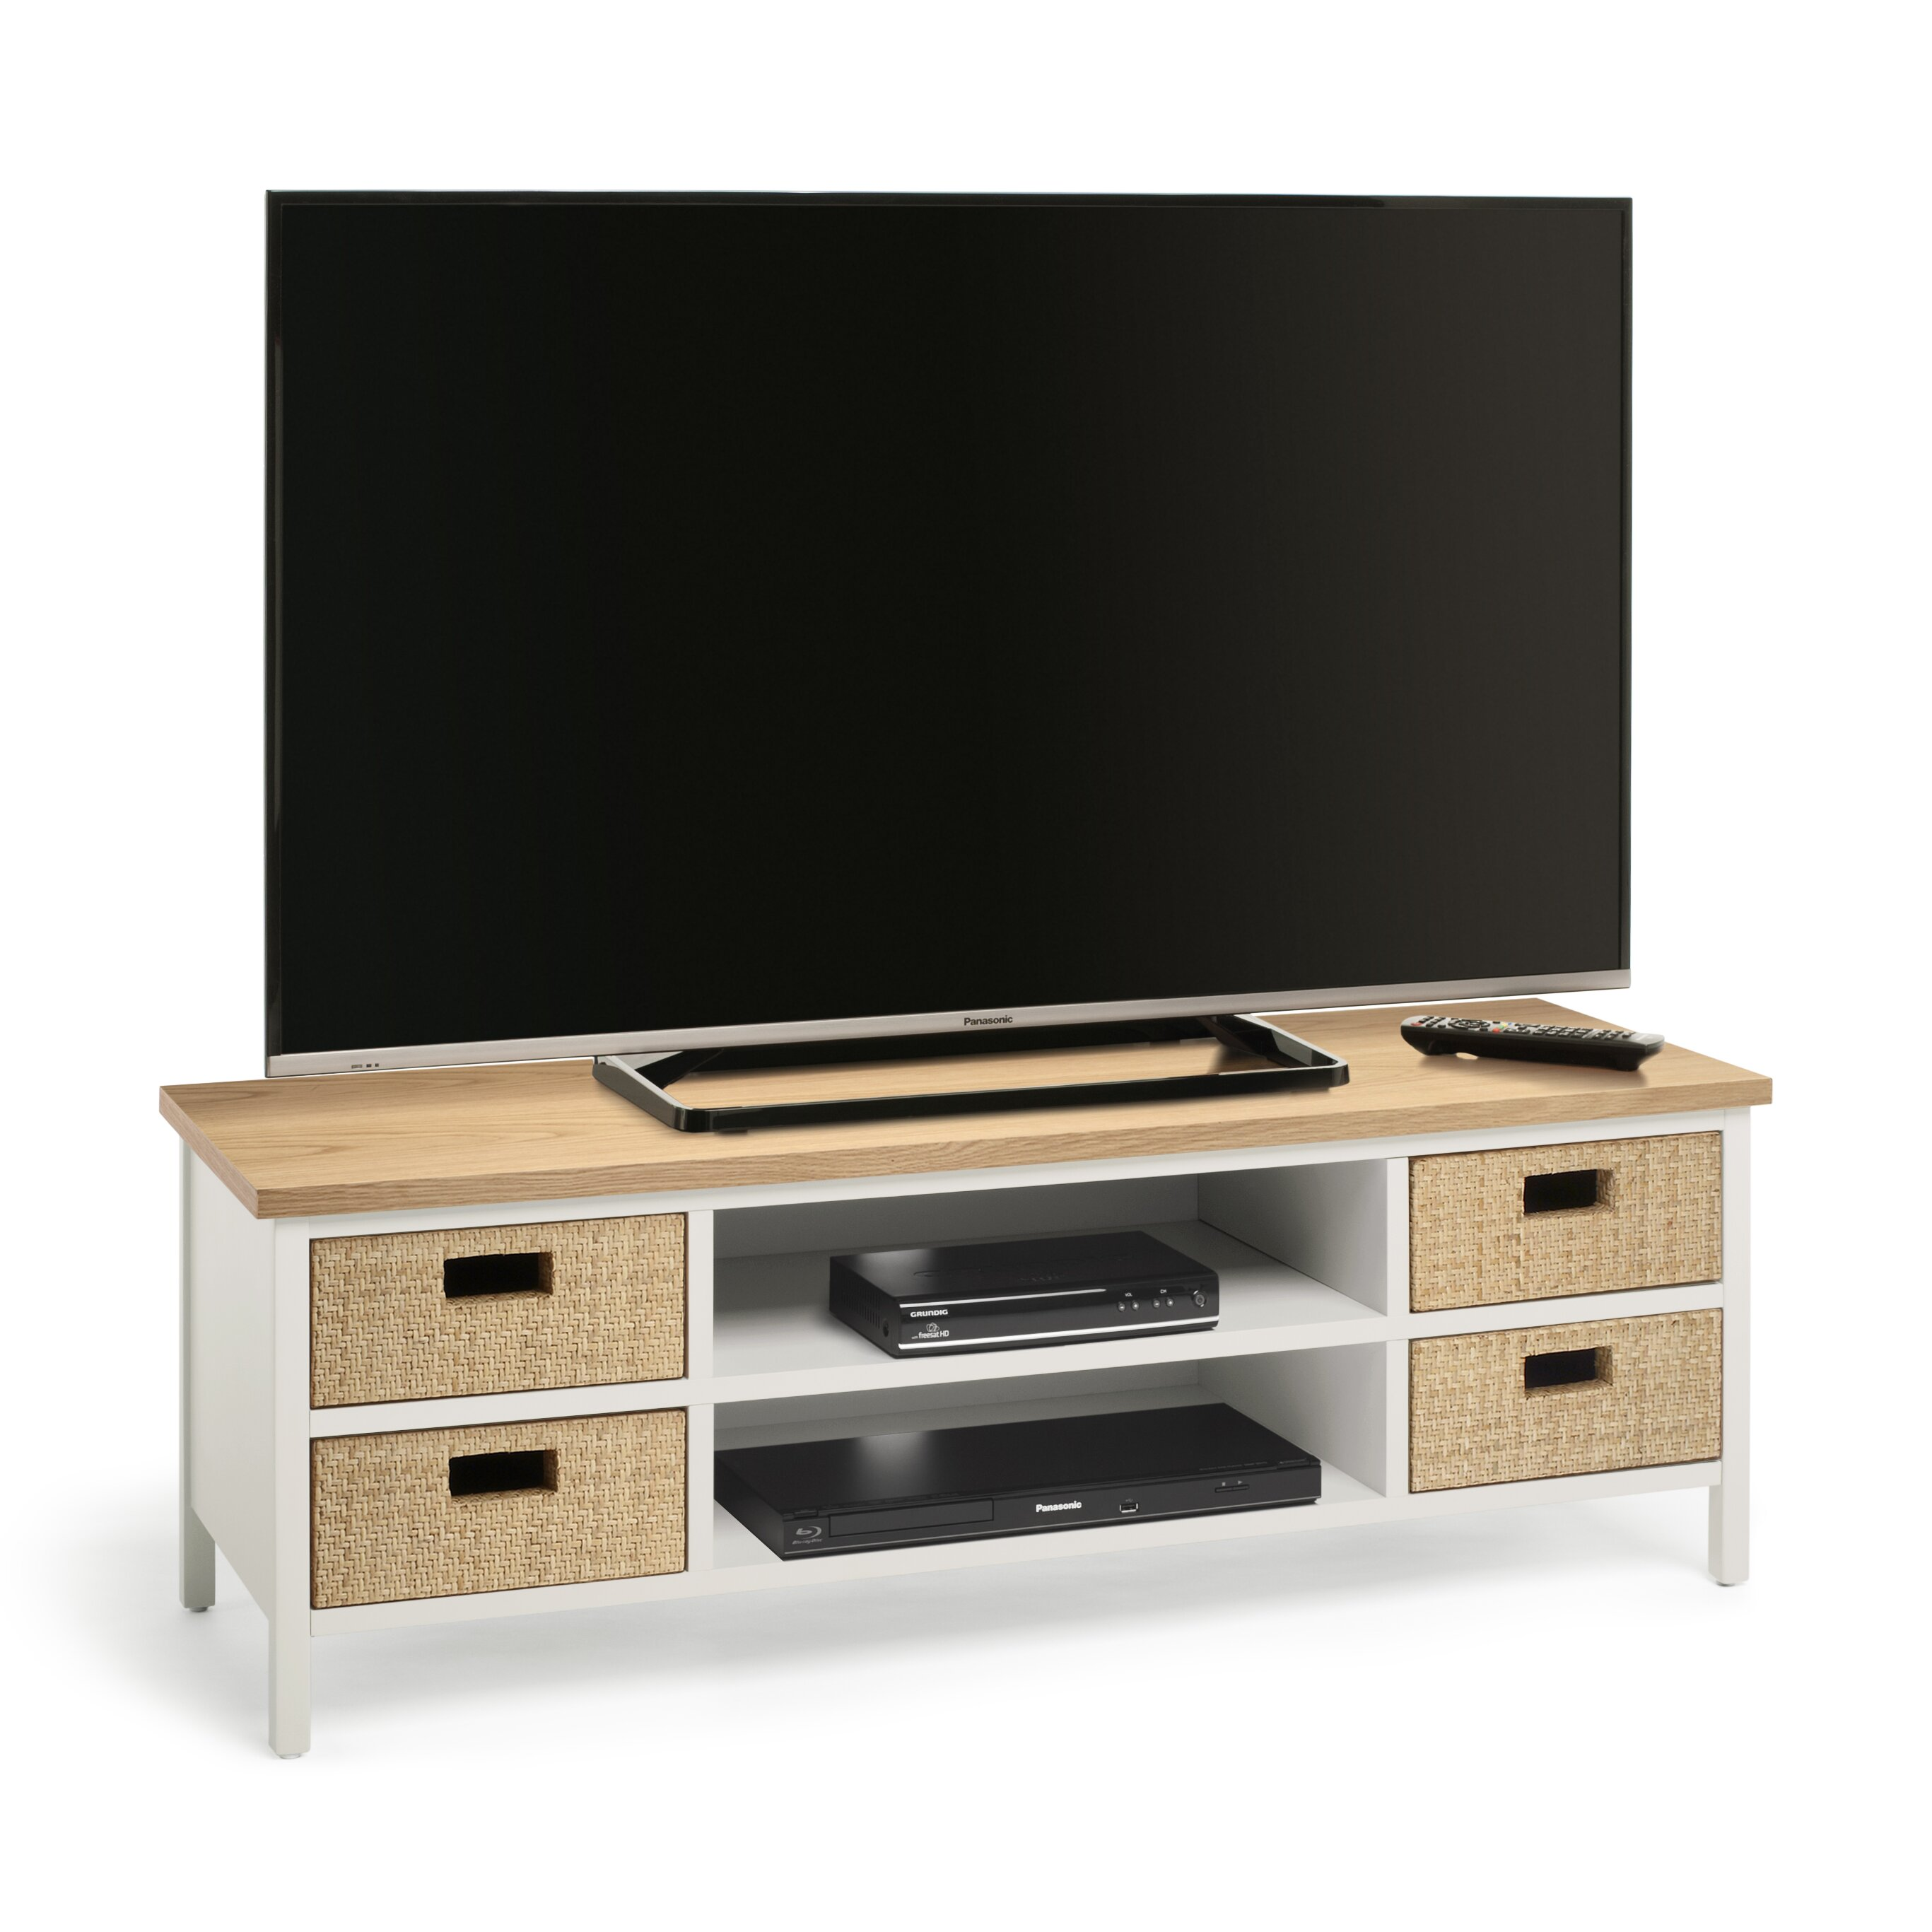 techlink tv regal wicker f r fernseher bis 55. Black Bedroom Furniture Sets. Home Design Ideas